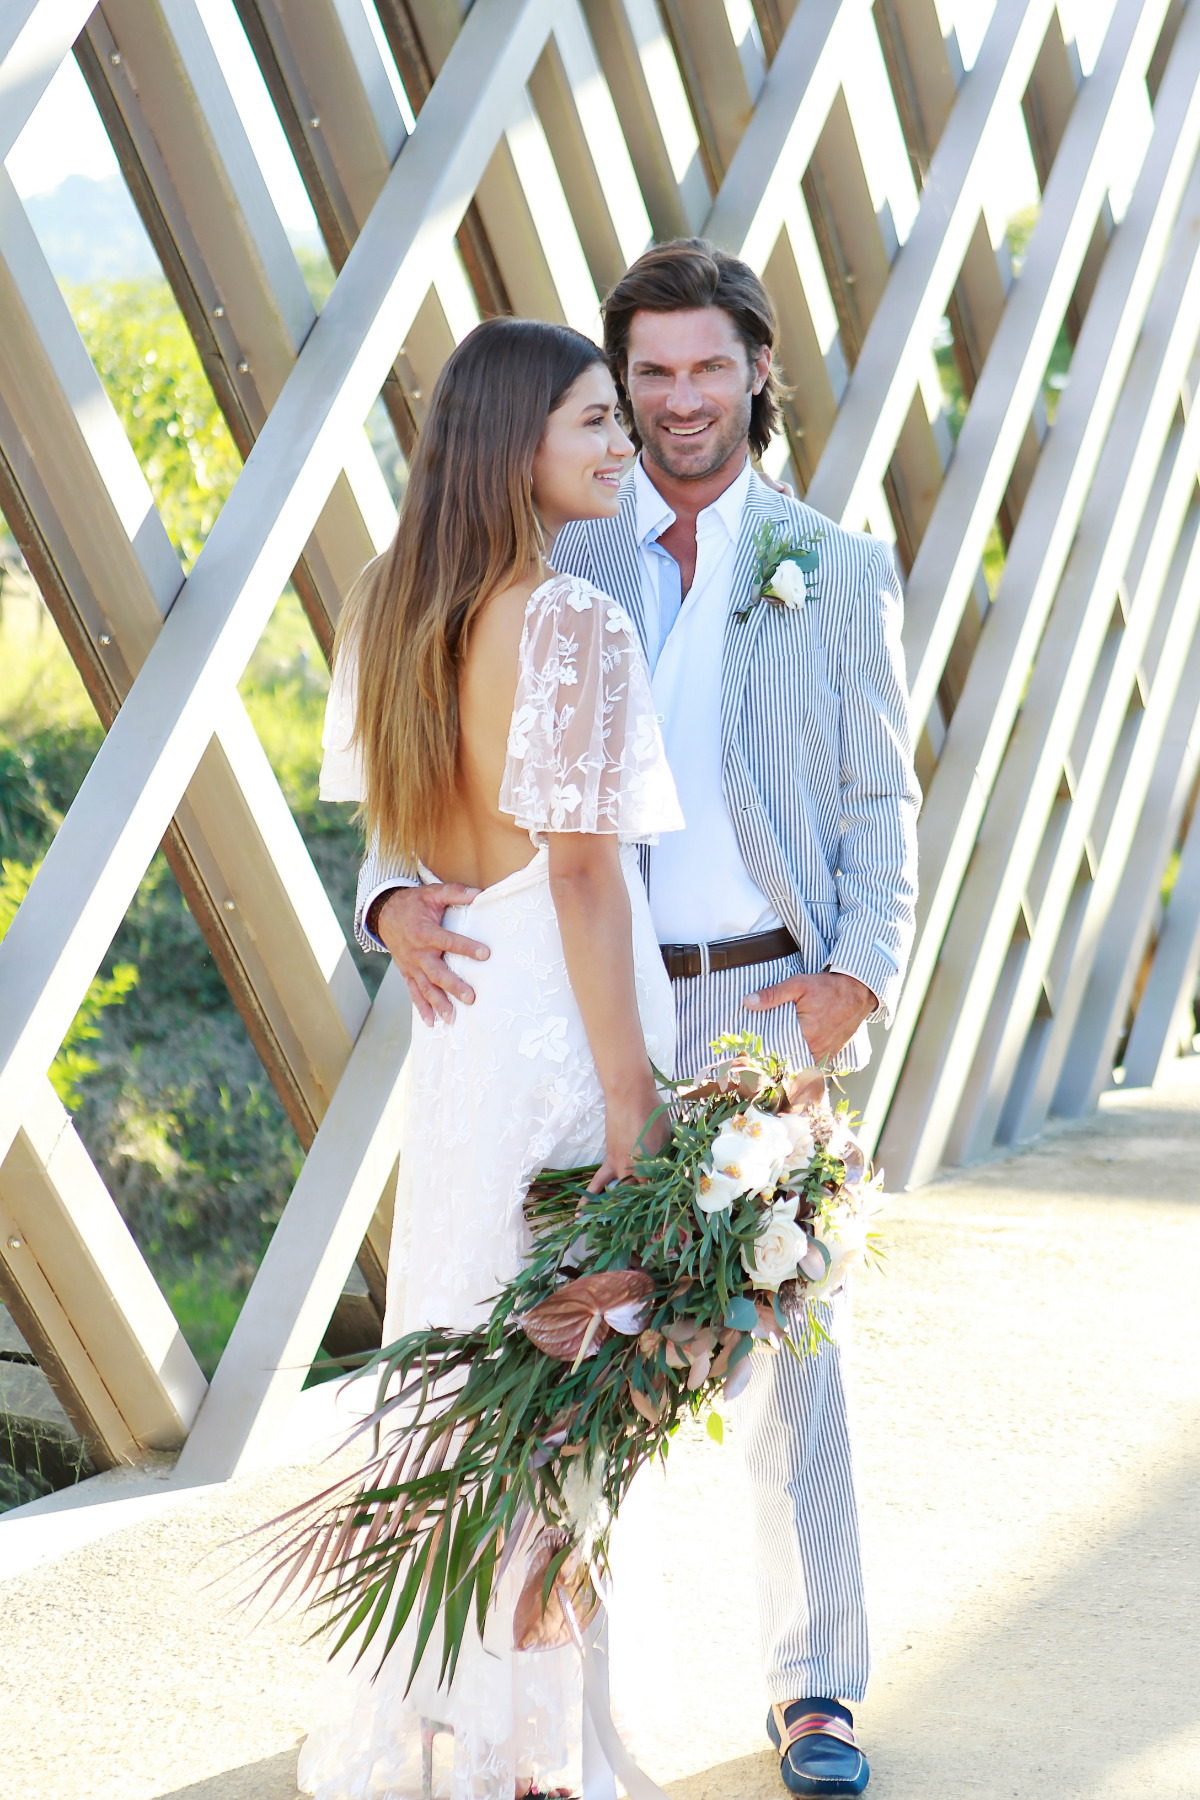 Preppy bride and groom wedding looks